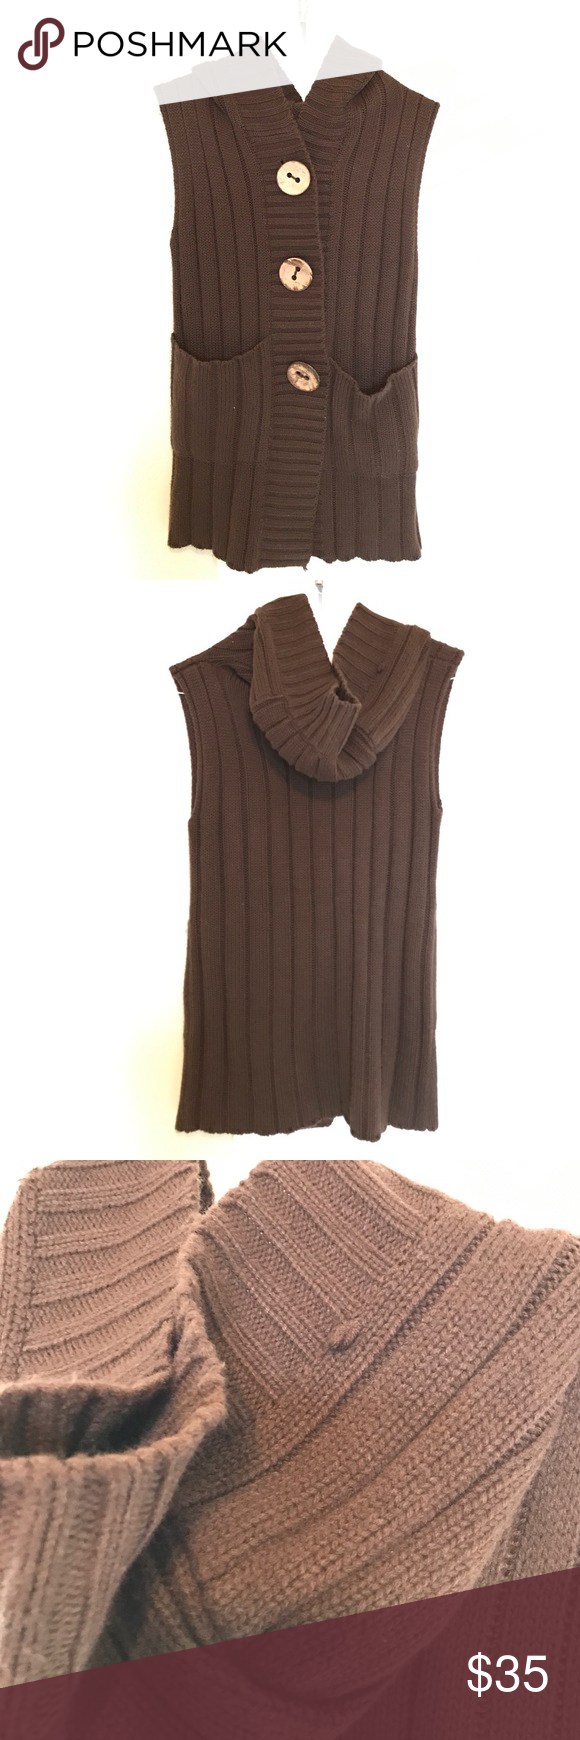 Vintage Knitted Sweater Vest | Vintage knitting, Dark brown and Hoods